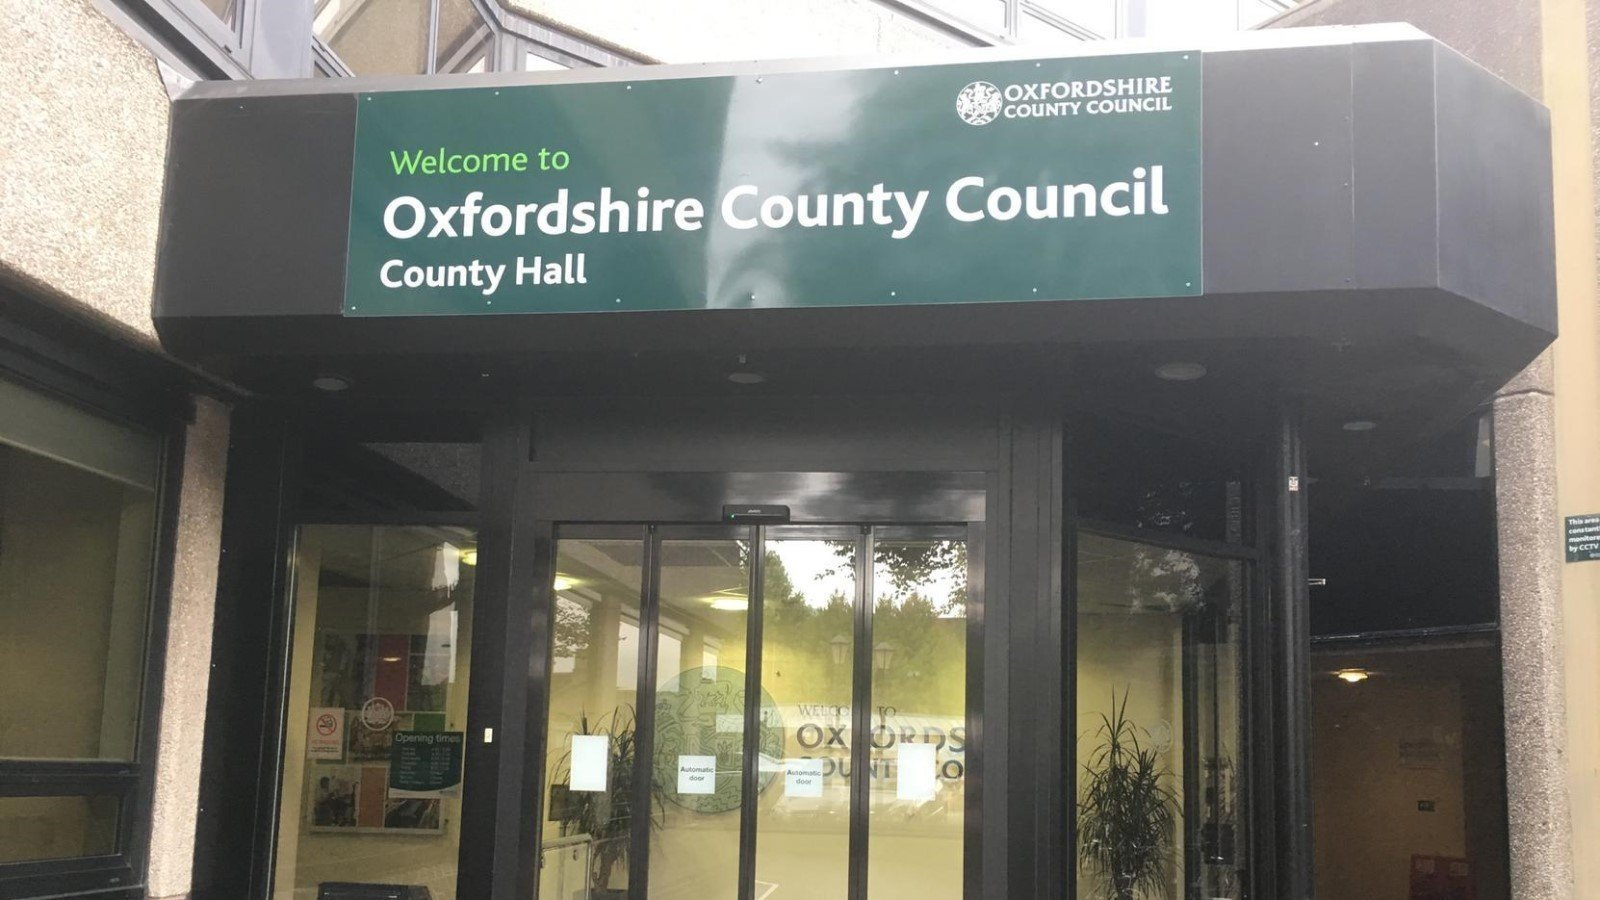 Oxfordshire County Council will not support plans for the Oxford-Cambridge Expressway